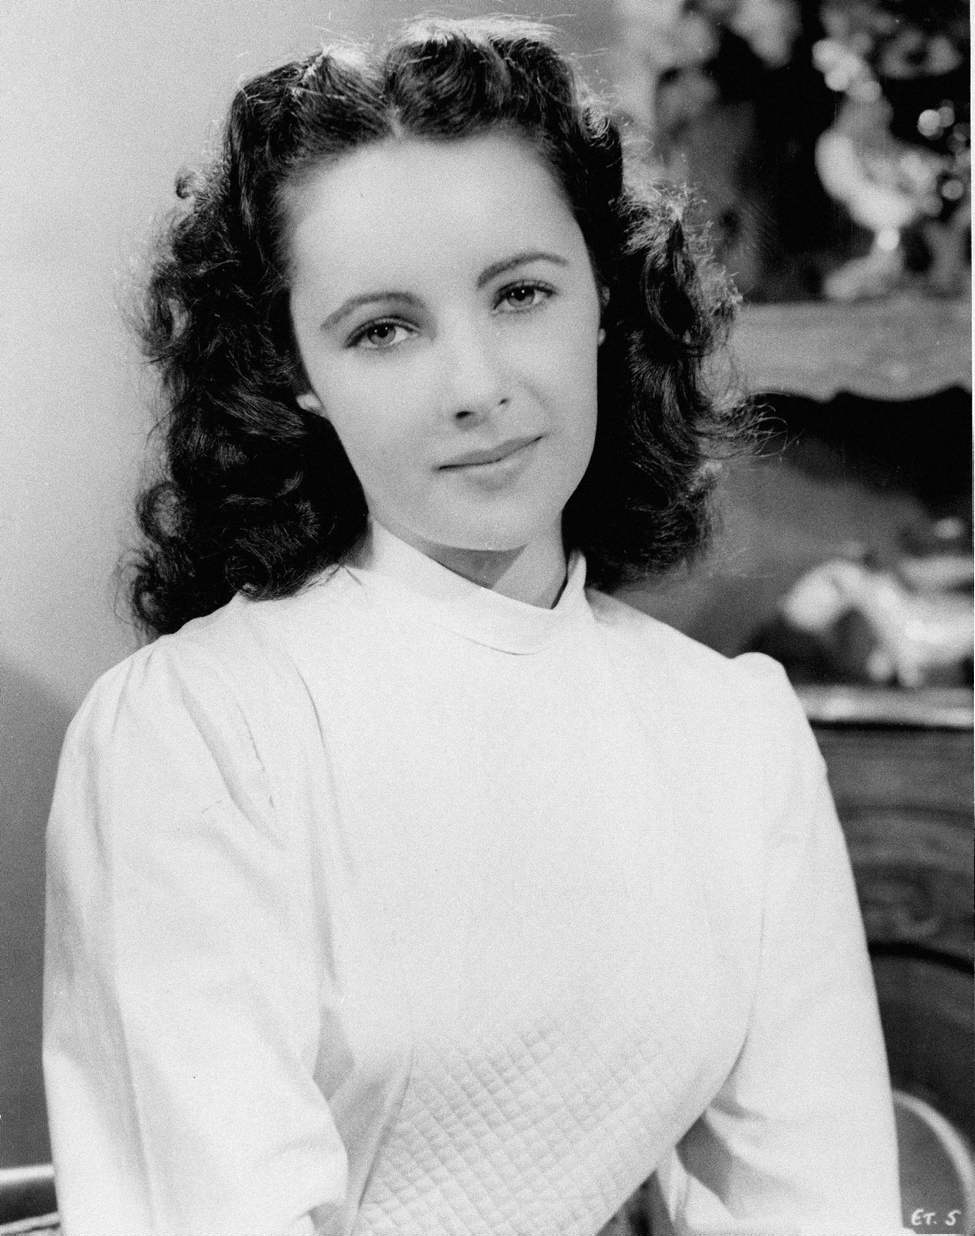 This Sept. 1946 file photo shows Elizabeth Taylor.  (AP Photo/File)